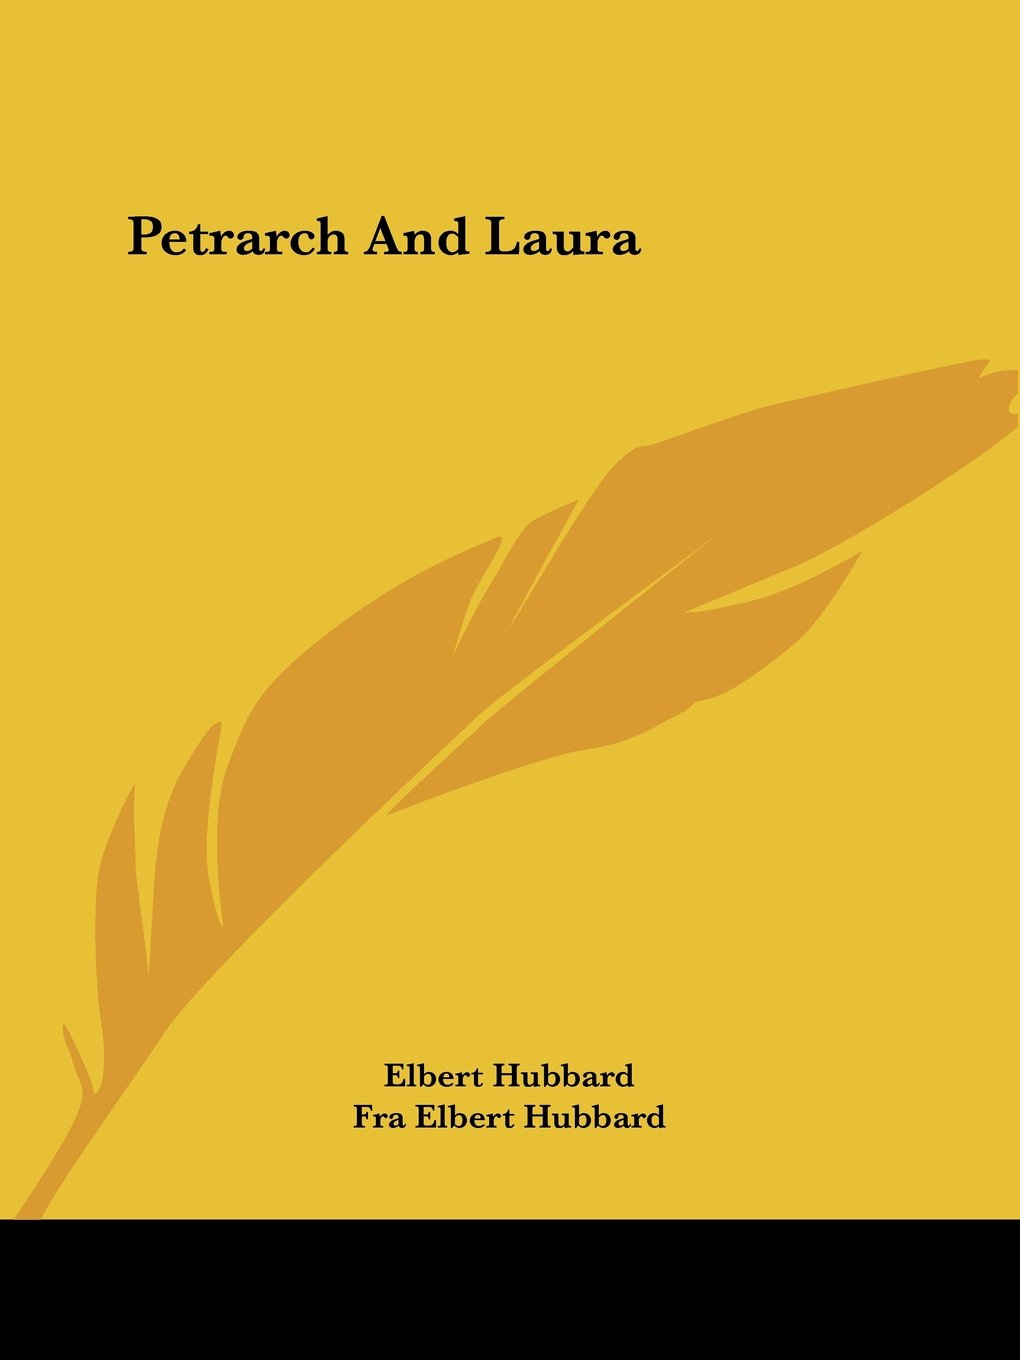 Petrarch And Laura by Kessinger Publishing, LLC